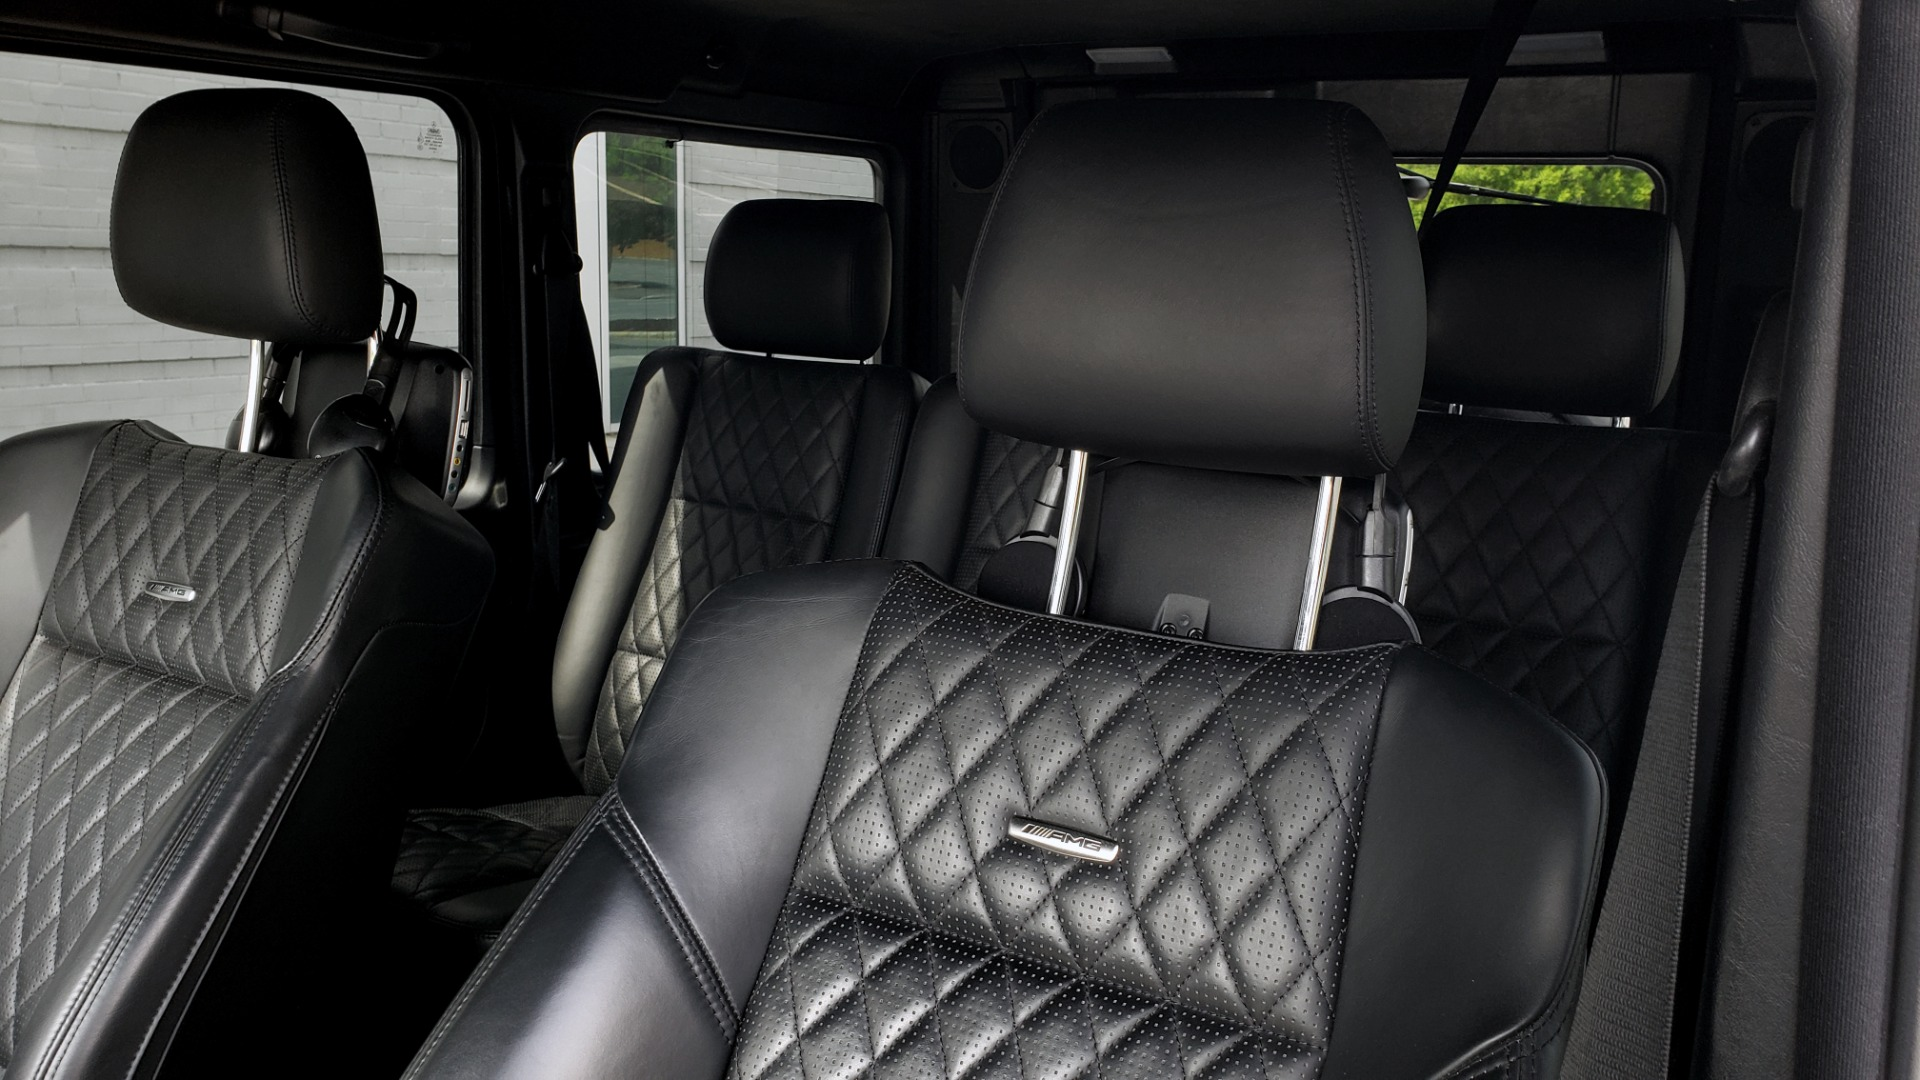 Used 2016 Mercedes-Benz G-CLASS AMG G 63 4MATIC / NAV / SUNROOF / H/K SND / ENT SYS / REARVIEW for sale $99,000 at Formula Imports in Charlotte NC 28227 14